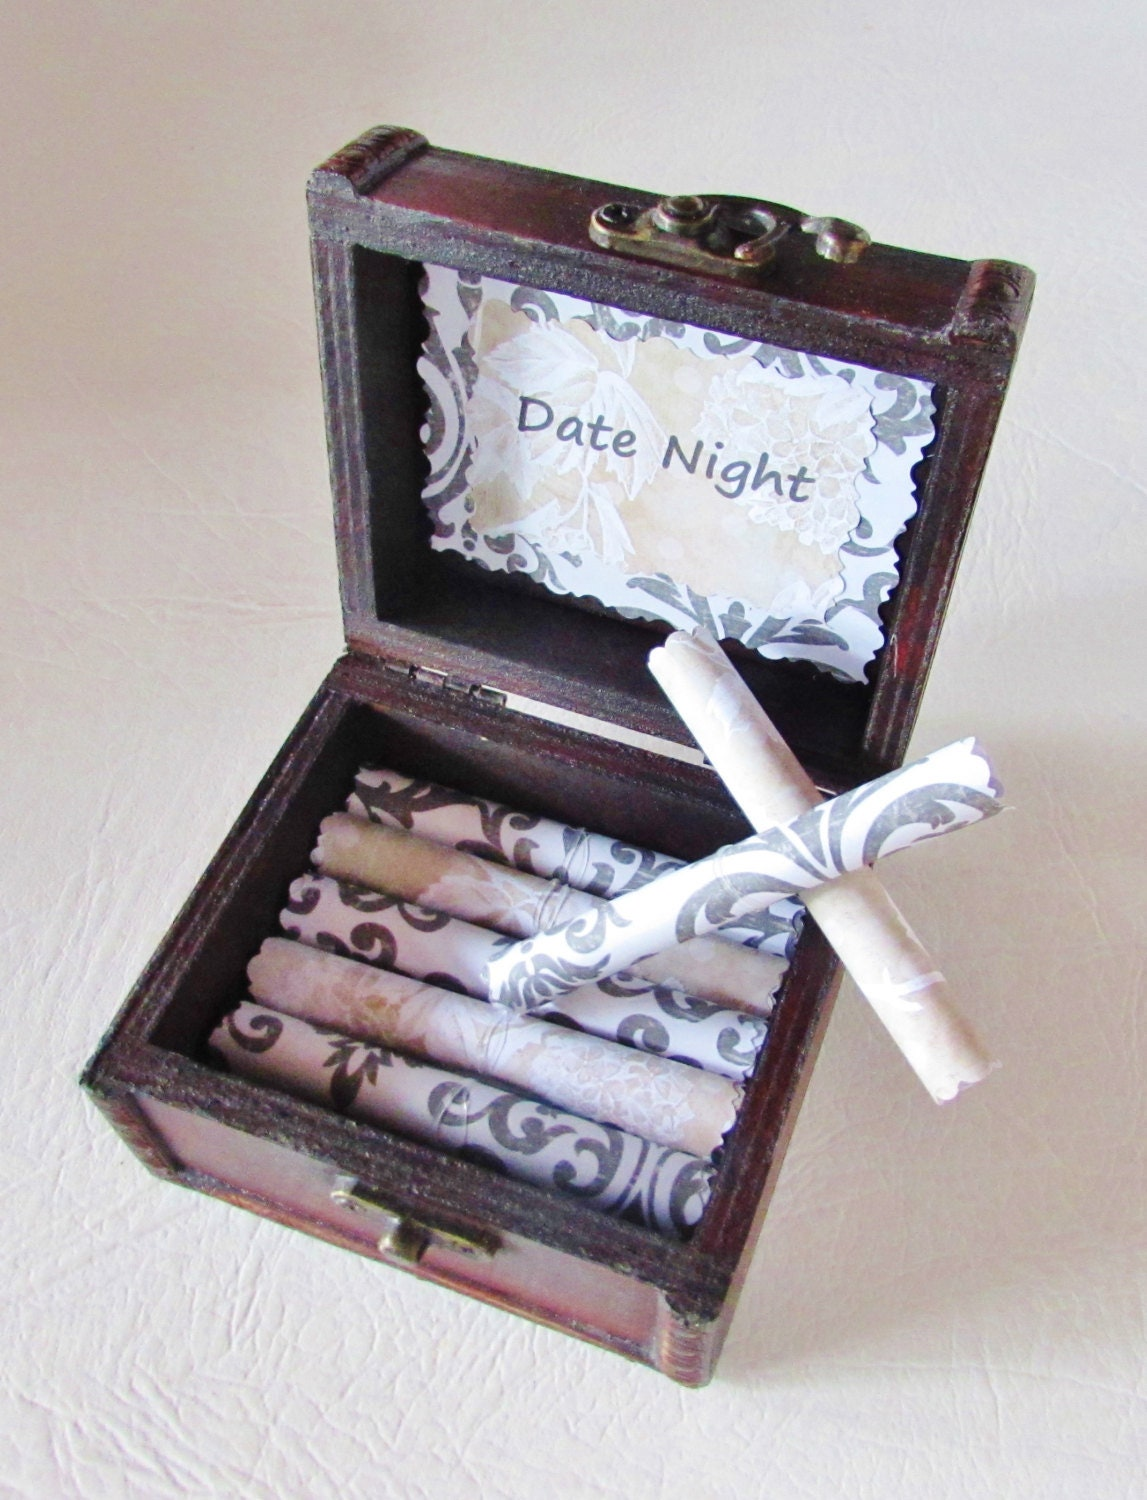 Girlfriend Birthday Gift Wife Date Night Scroll Box